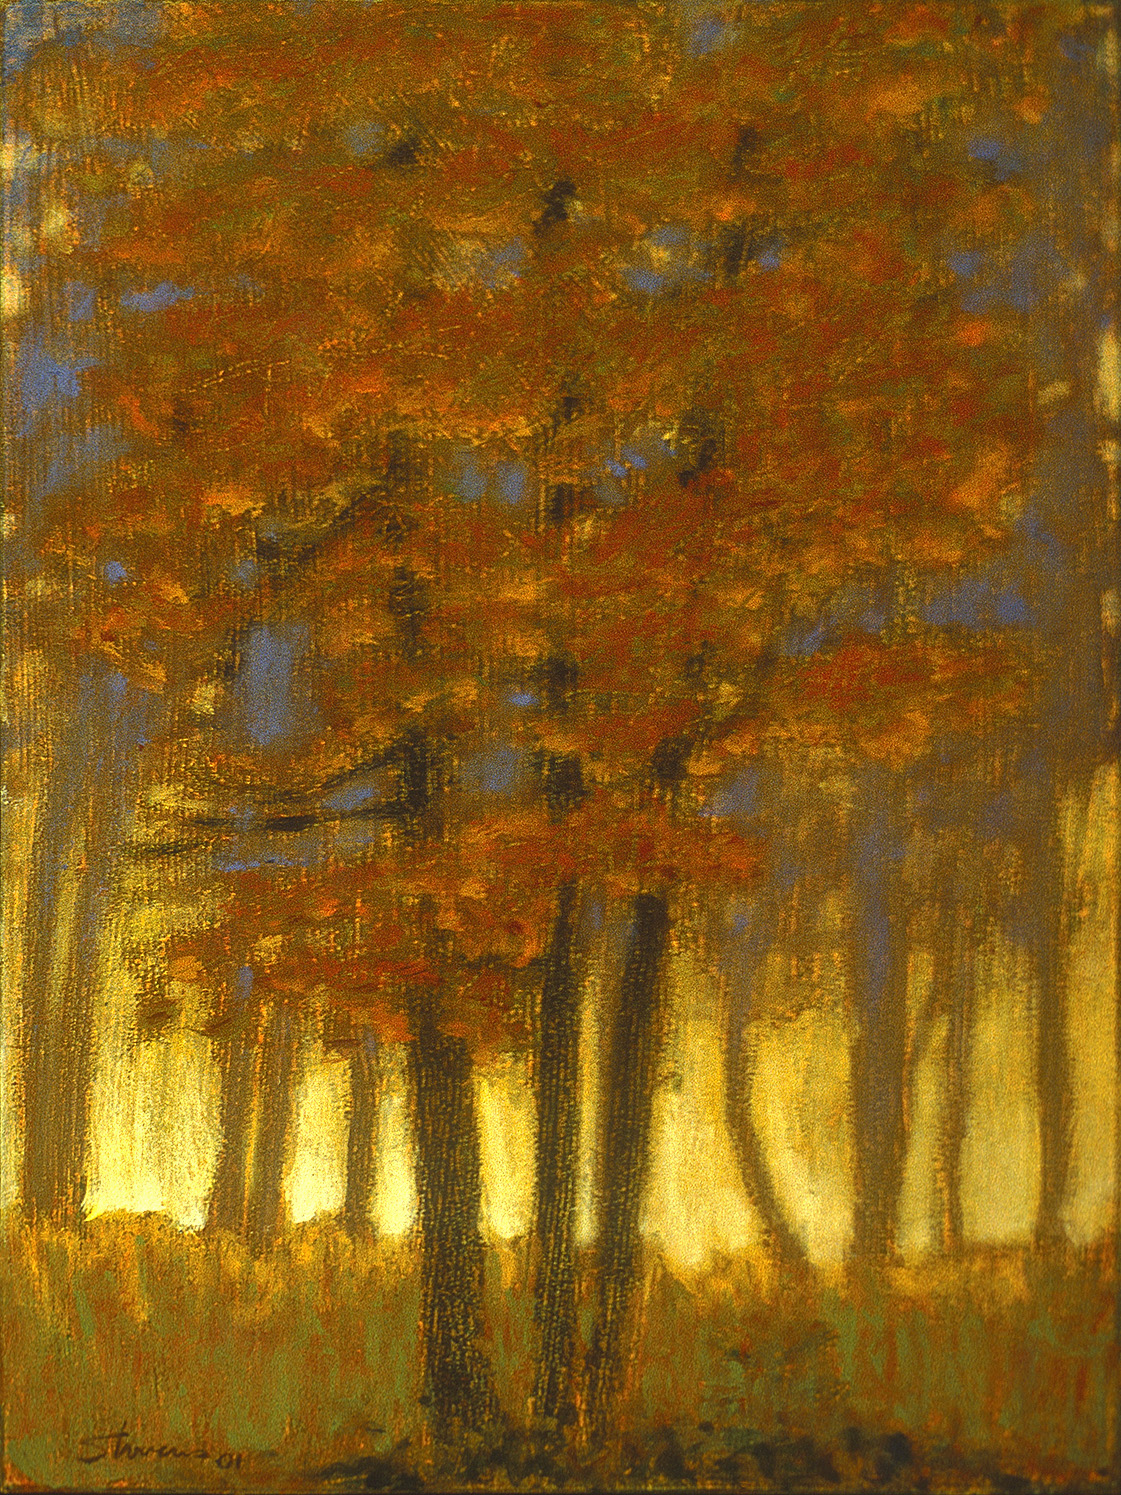 Beaver Island   | oil on canvas | 12 x 10"